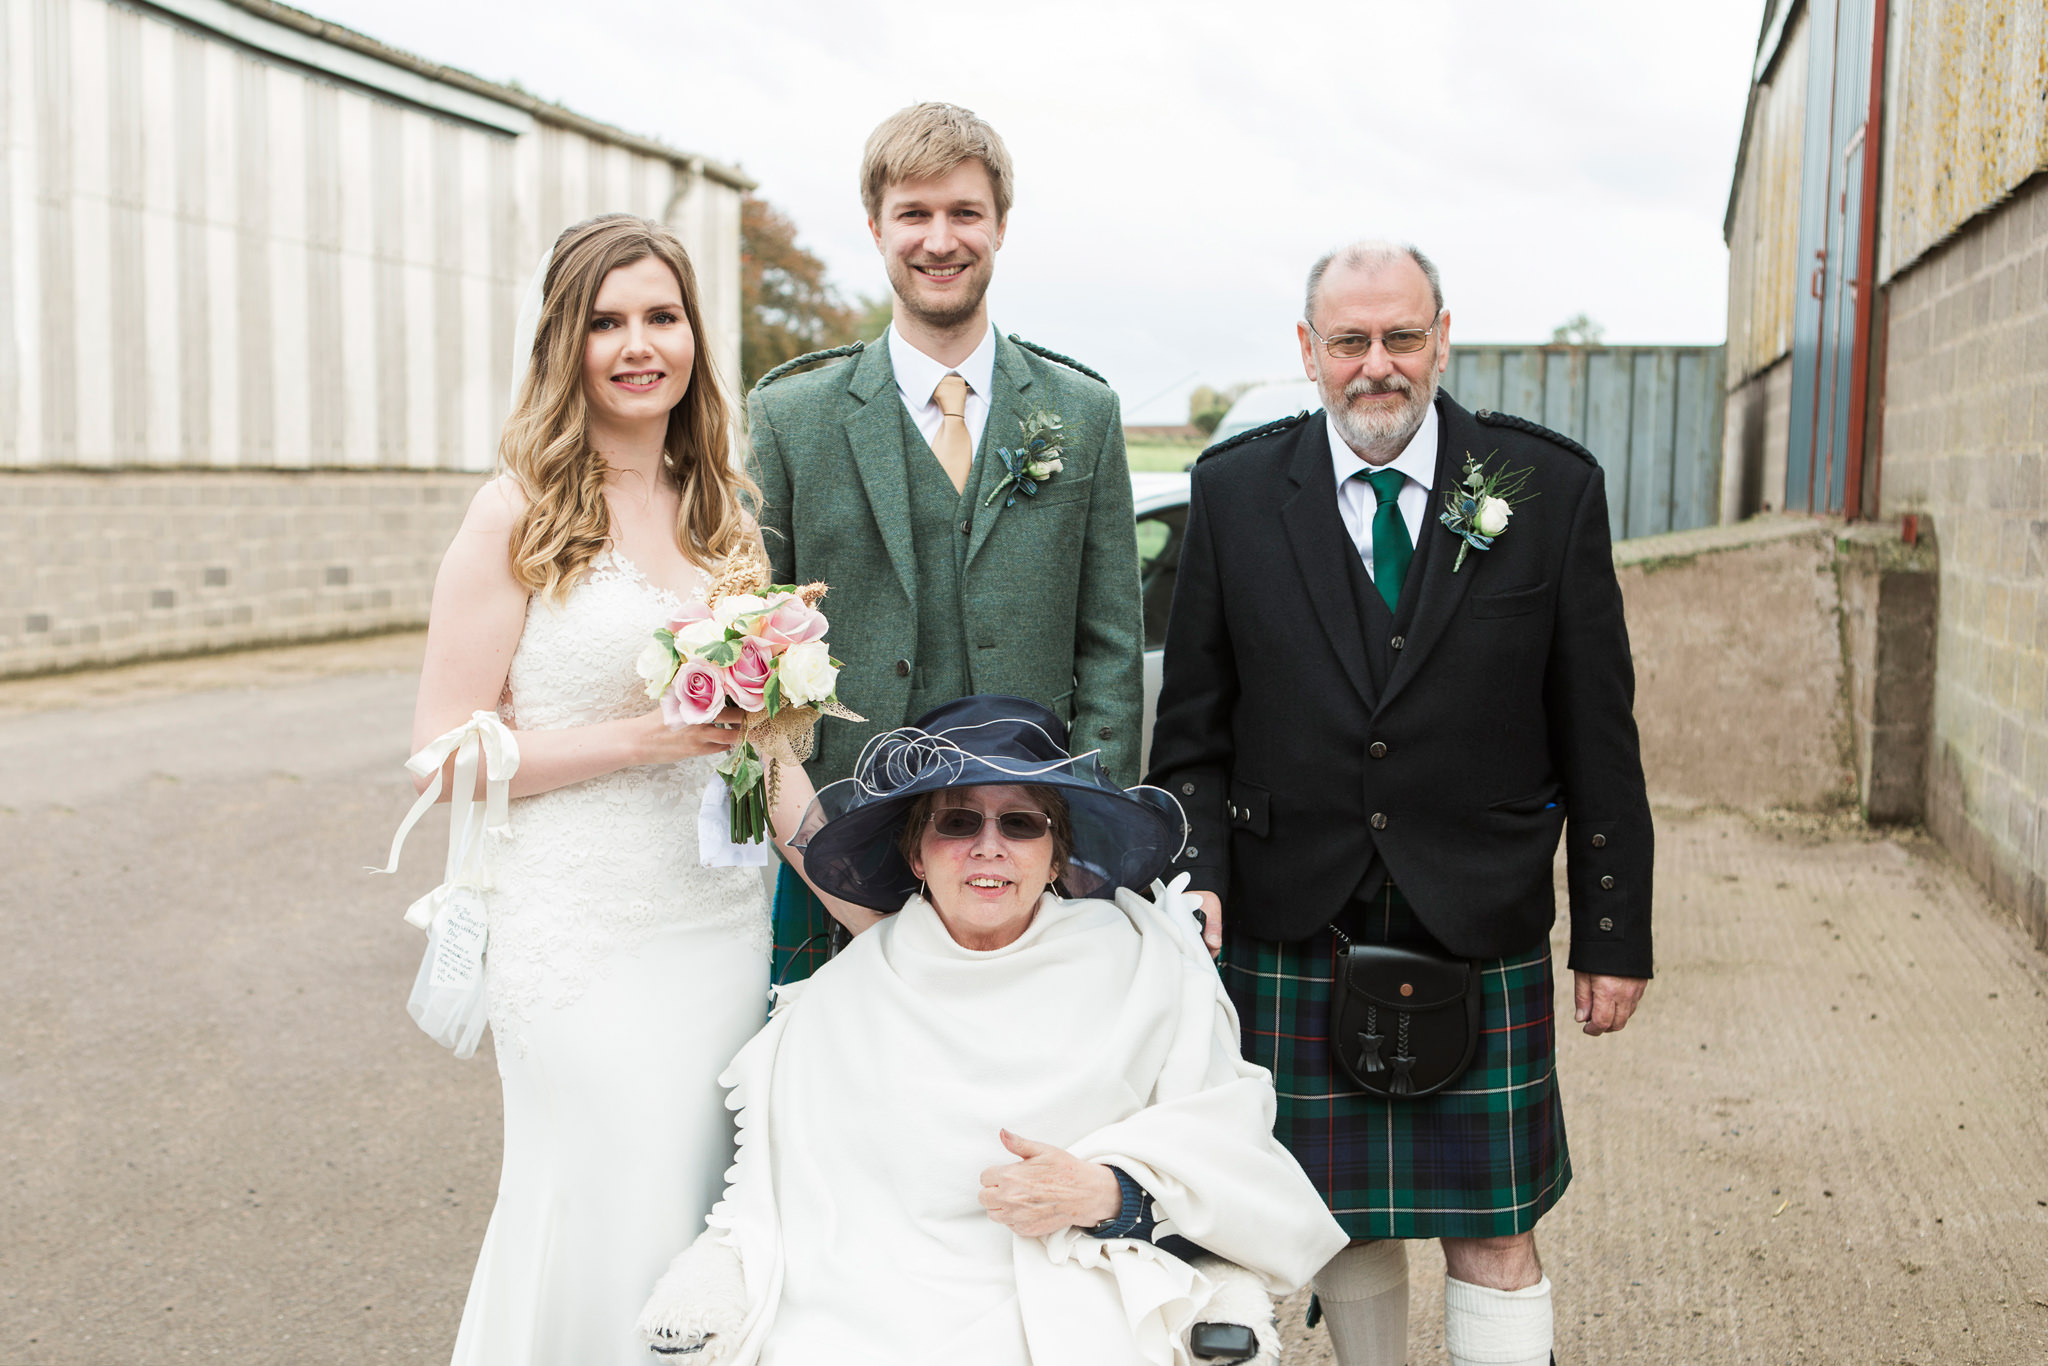 063-farm-wedding-scotland-photography.jpg